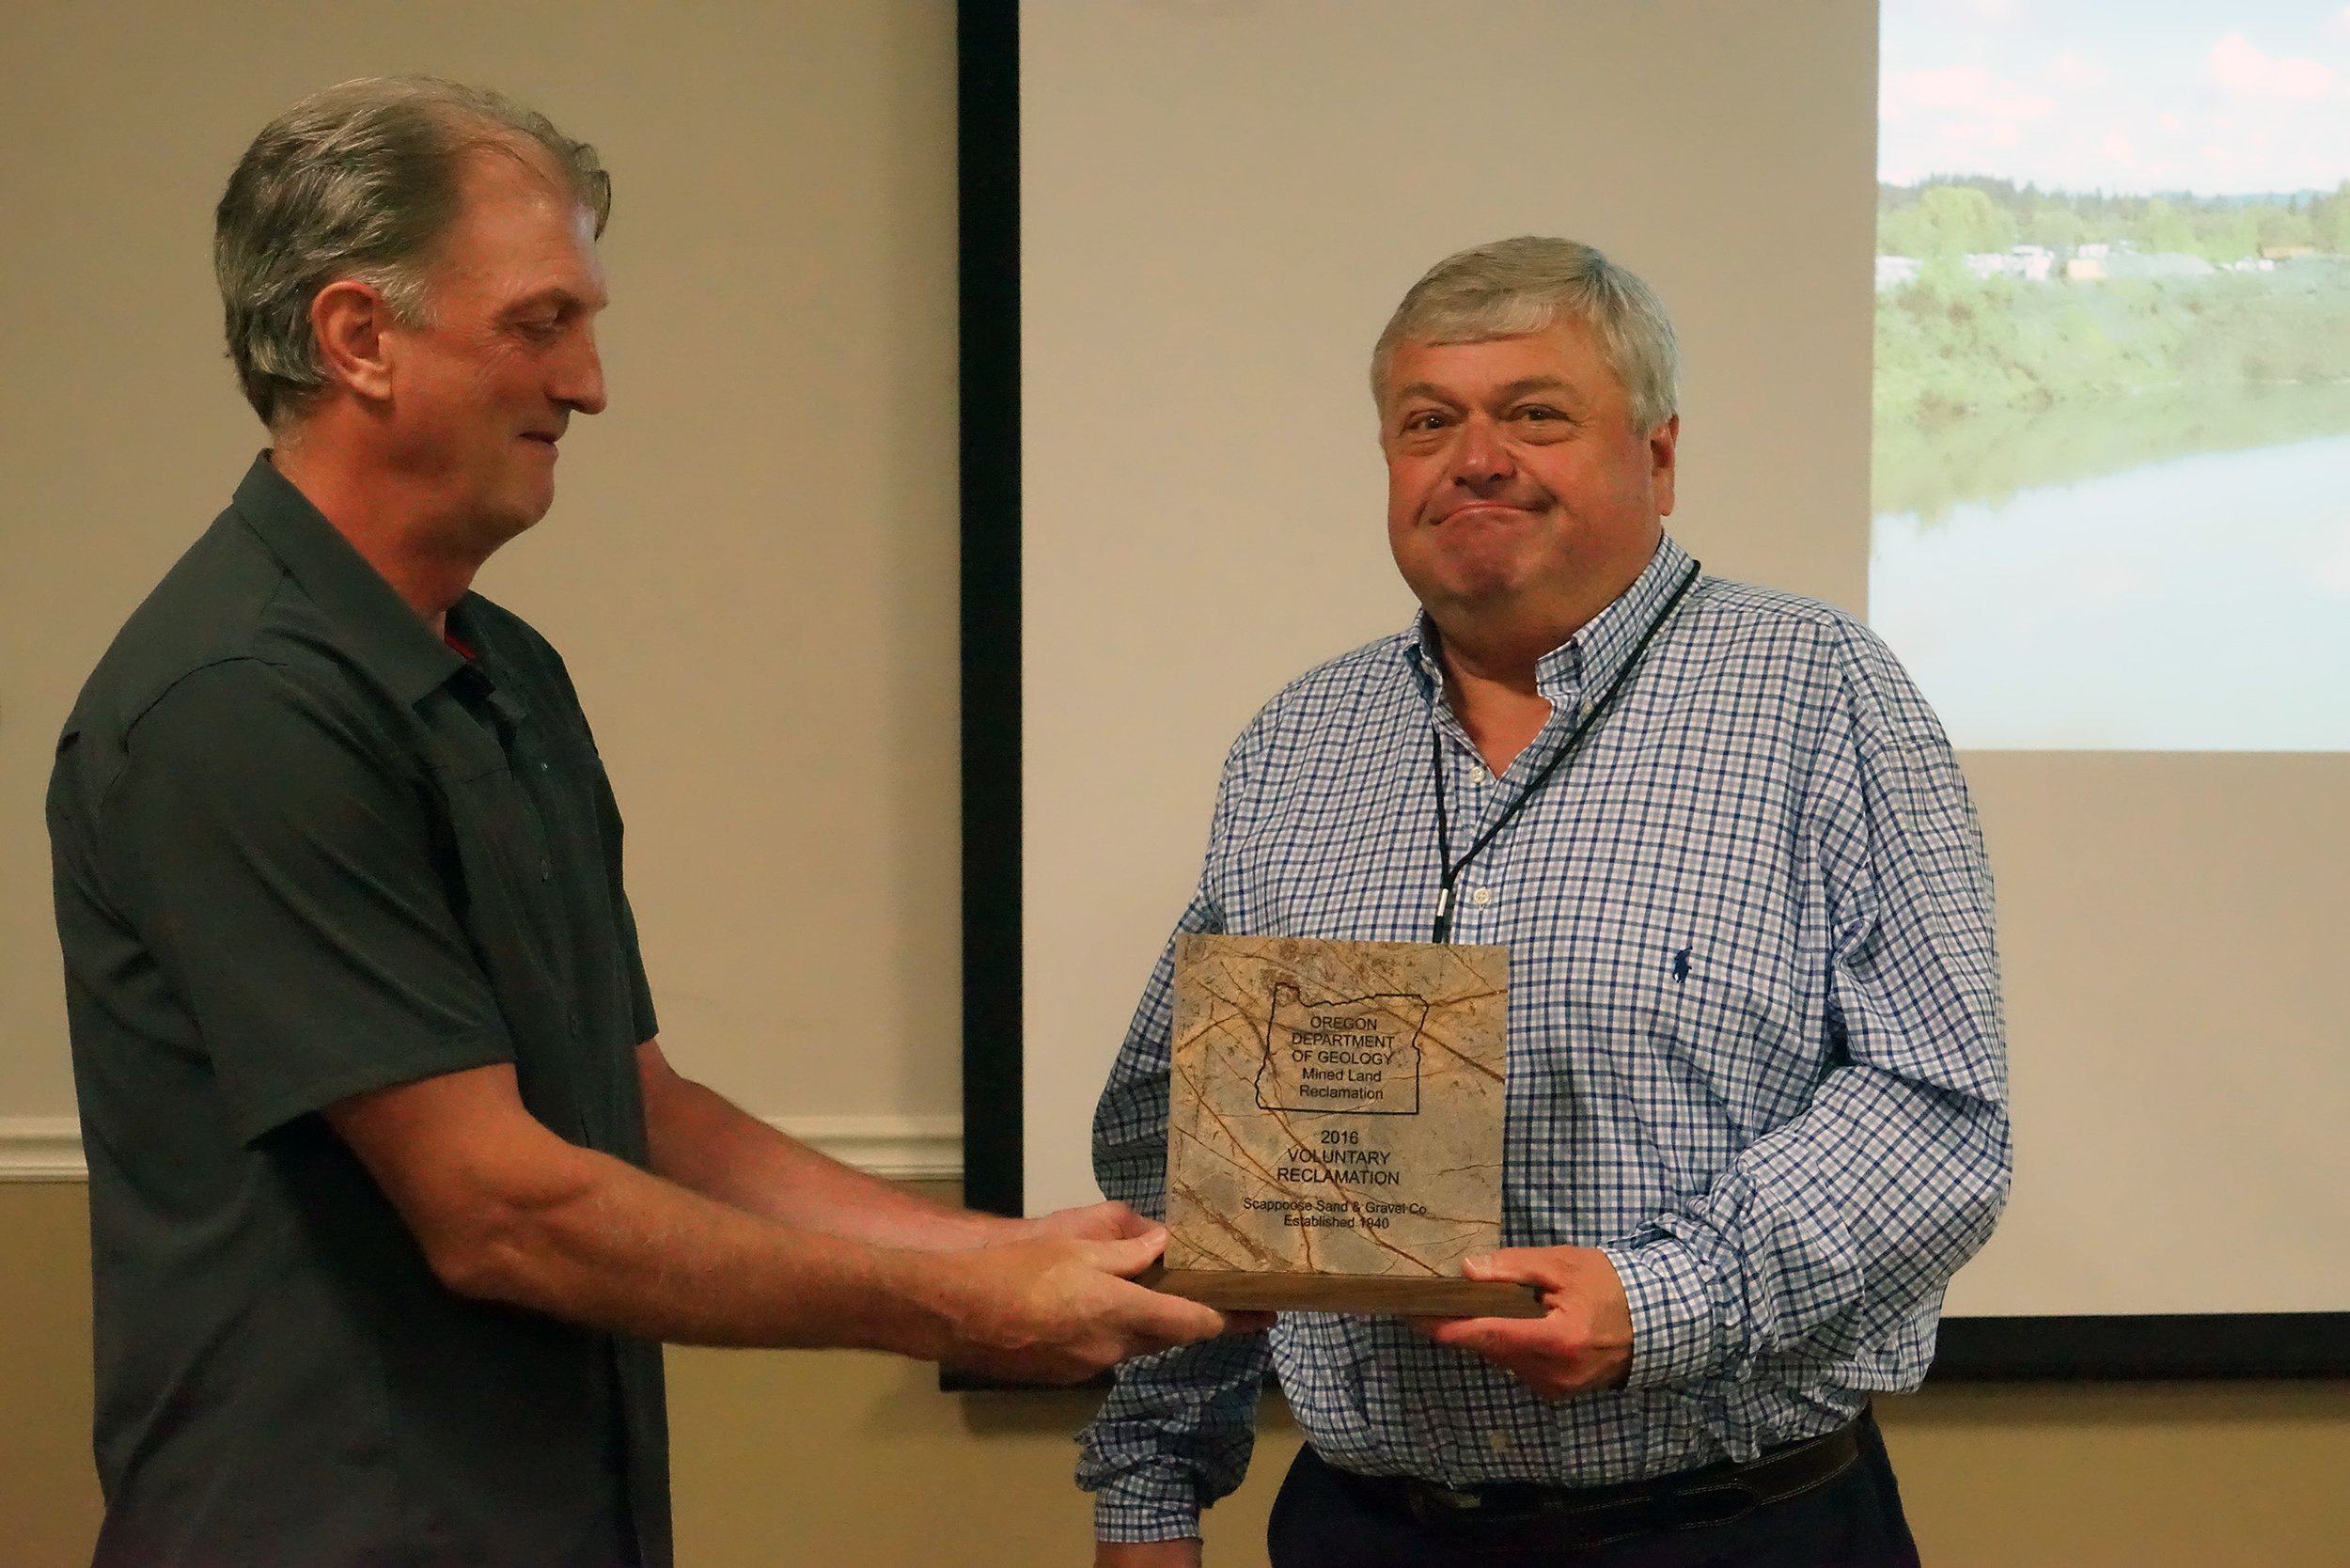 Scott Parker of Scappoose Sand & Gravel received the Voluntary Reclamation Award for 2016